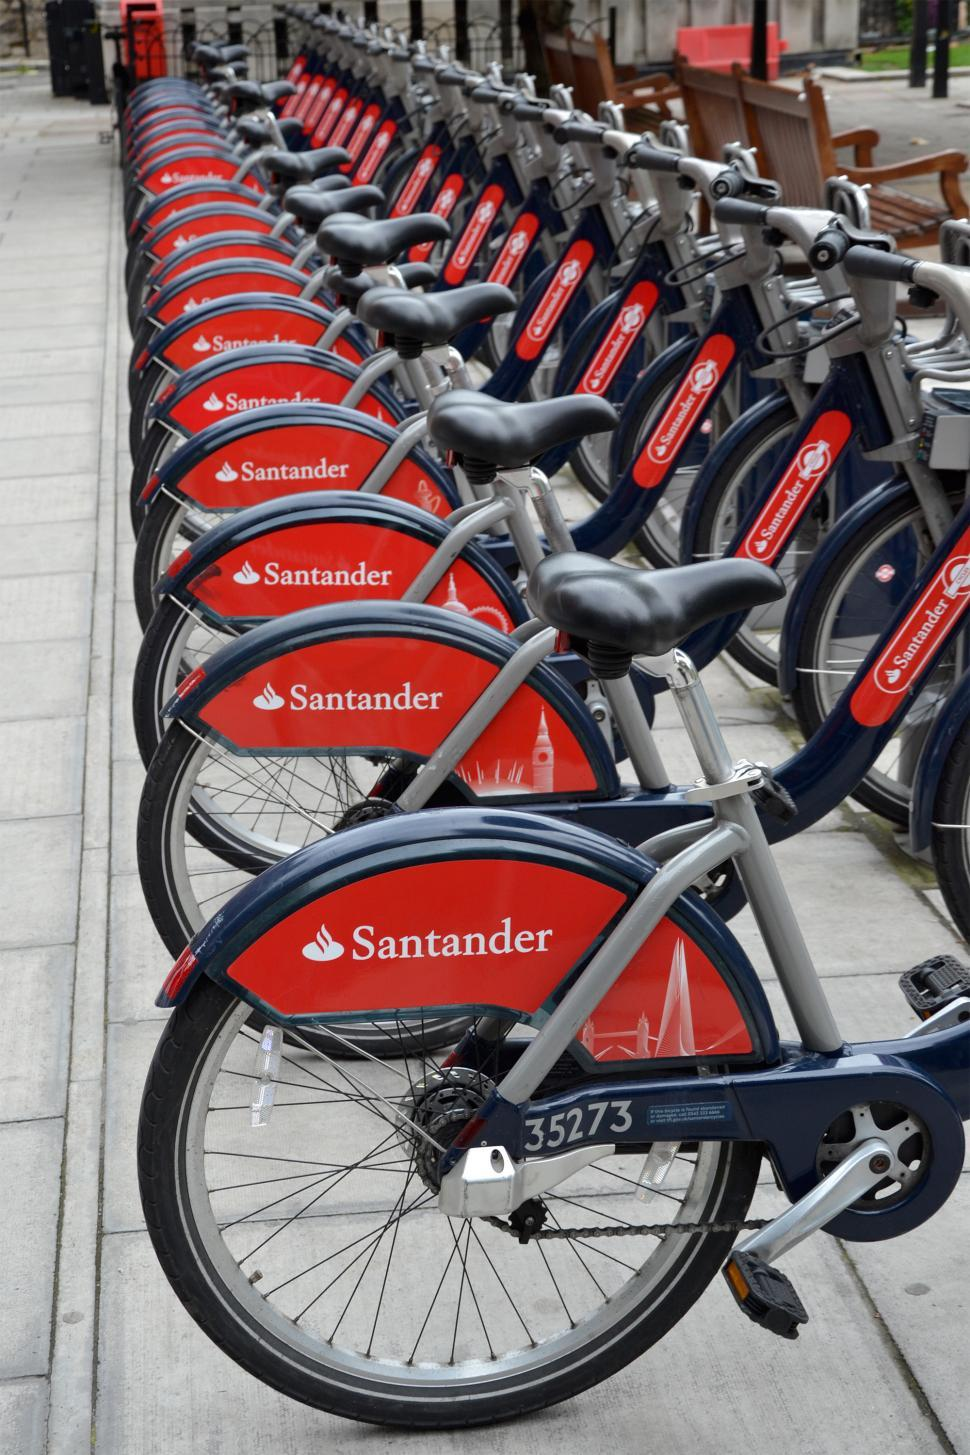 Download Free Stock Photo of Santander bikes